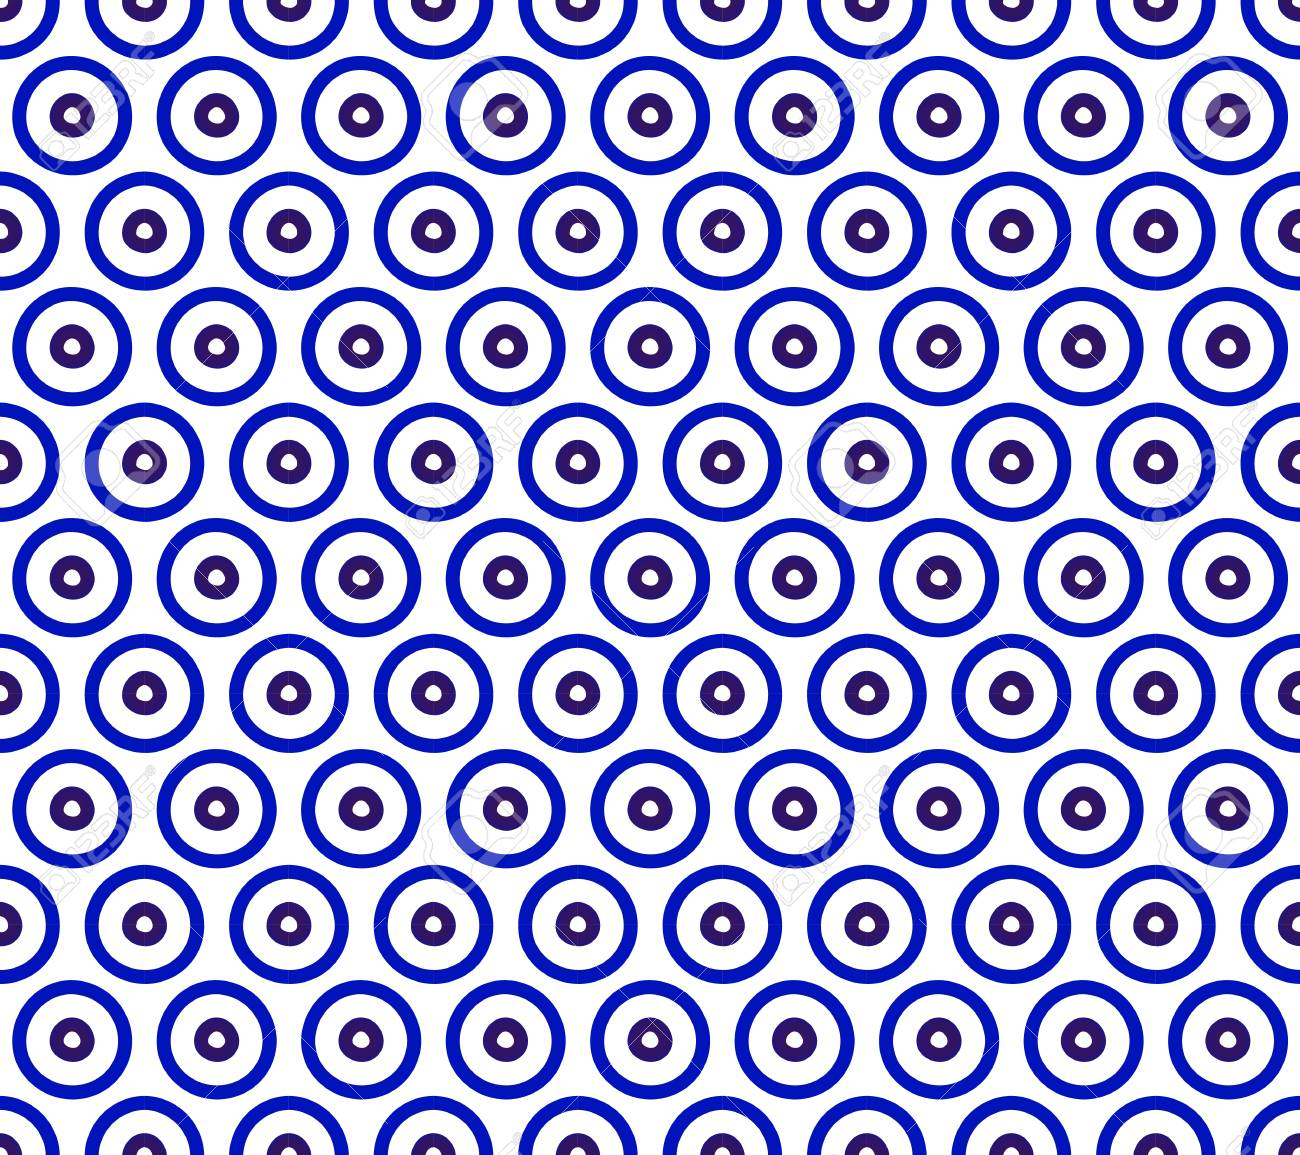 Ceramic Pattern Blue And White Chinese And Japanese Style Cute Royalty Free Cliparts Vectors And Stock Illustration Image 112808893